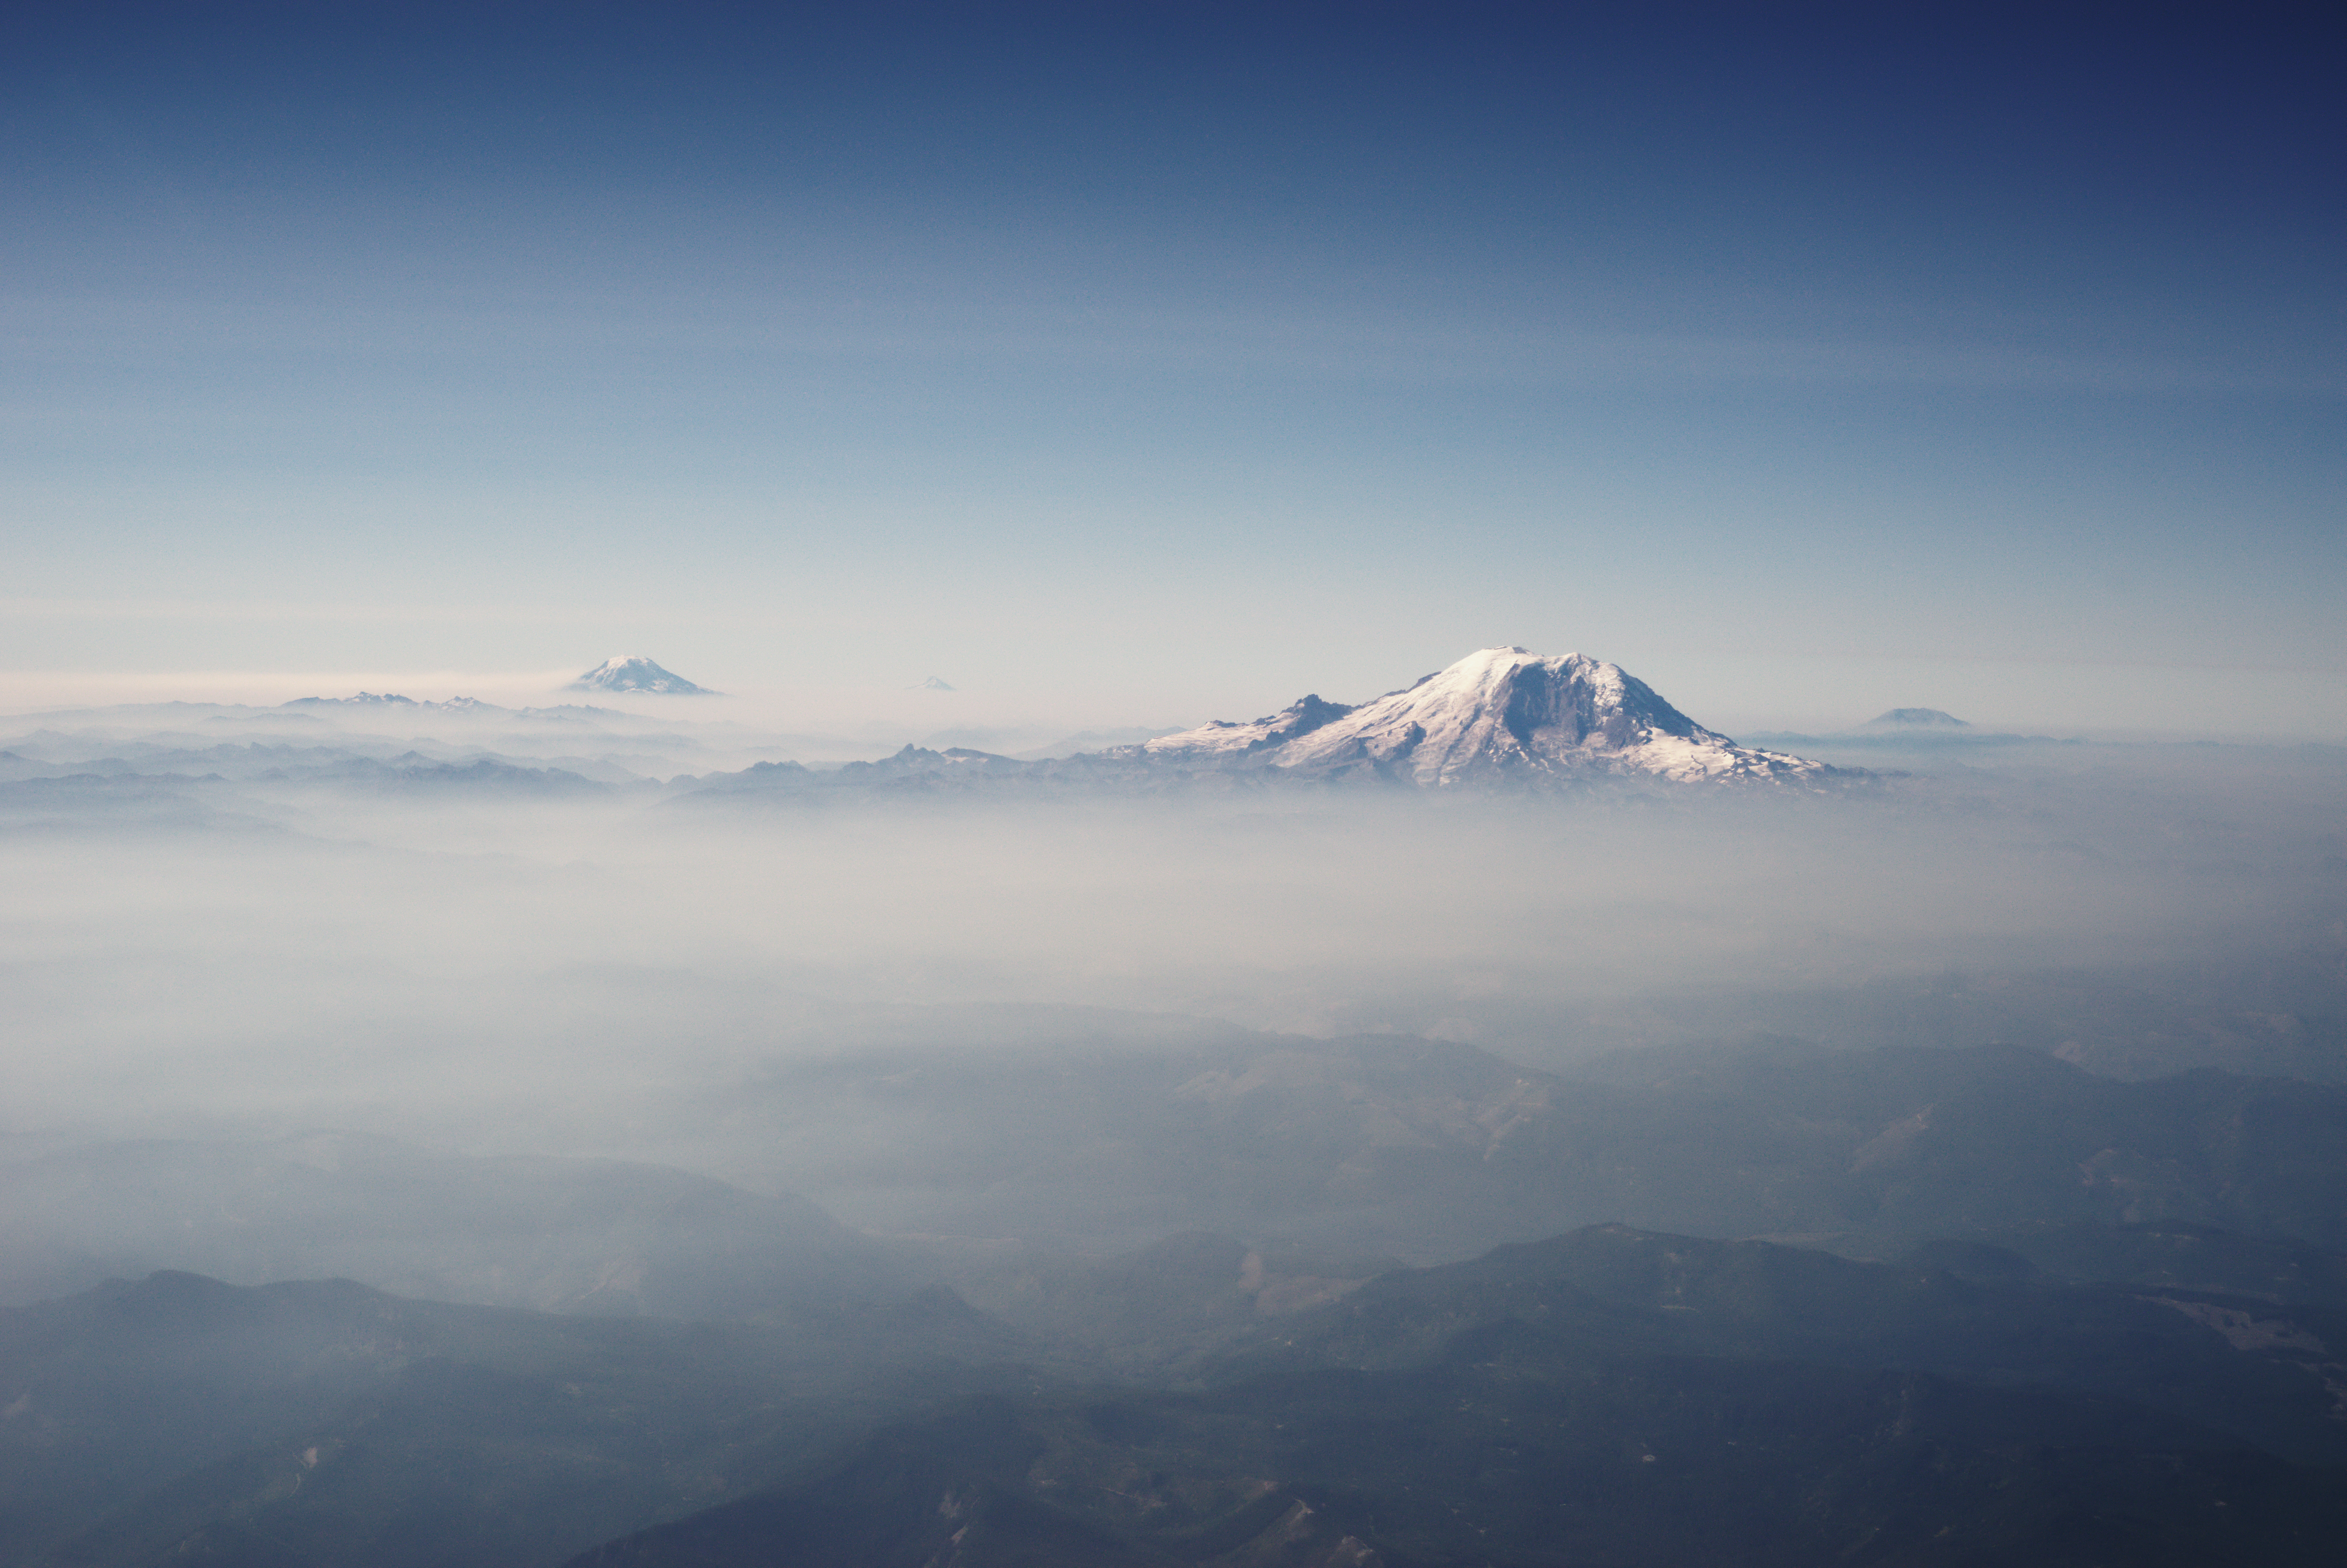 Oh l'amour, love, amore, amor... - Página 2 Mount_Rainier_and_other_Cascades_mountains_poking_through_clouds